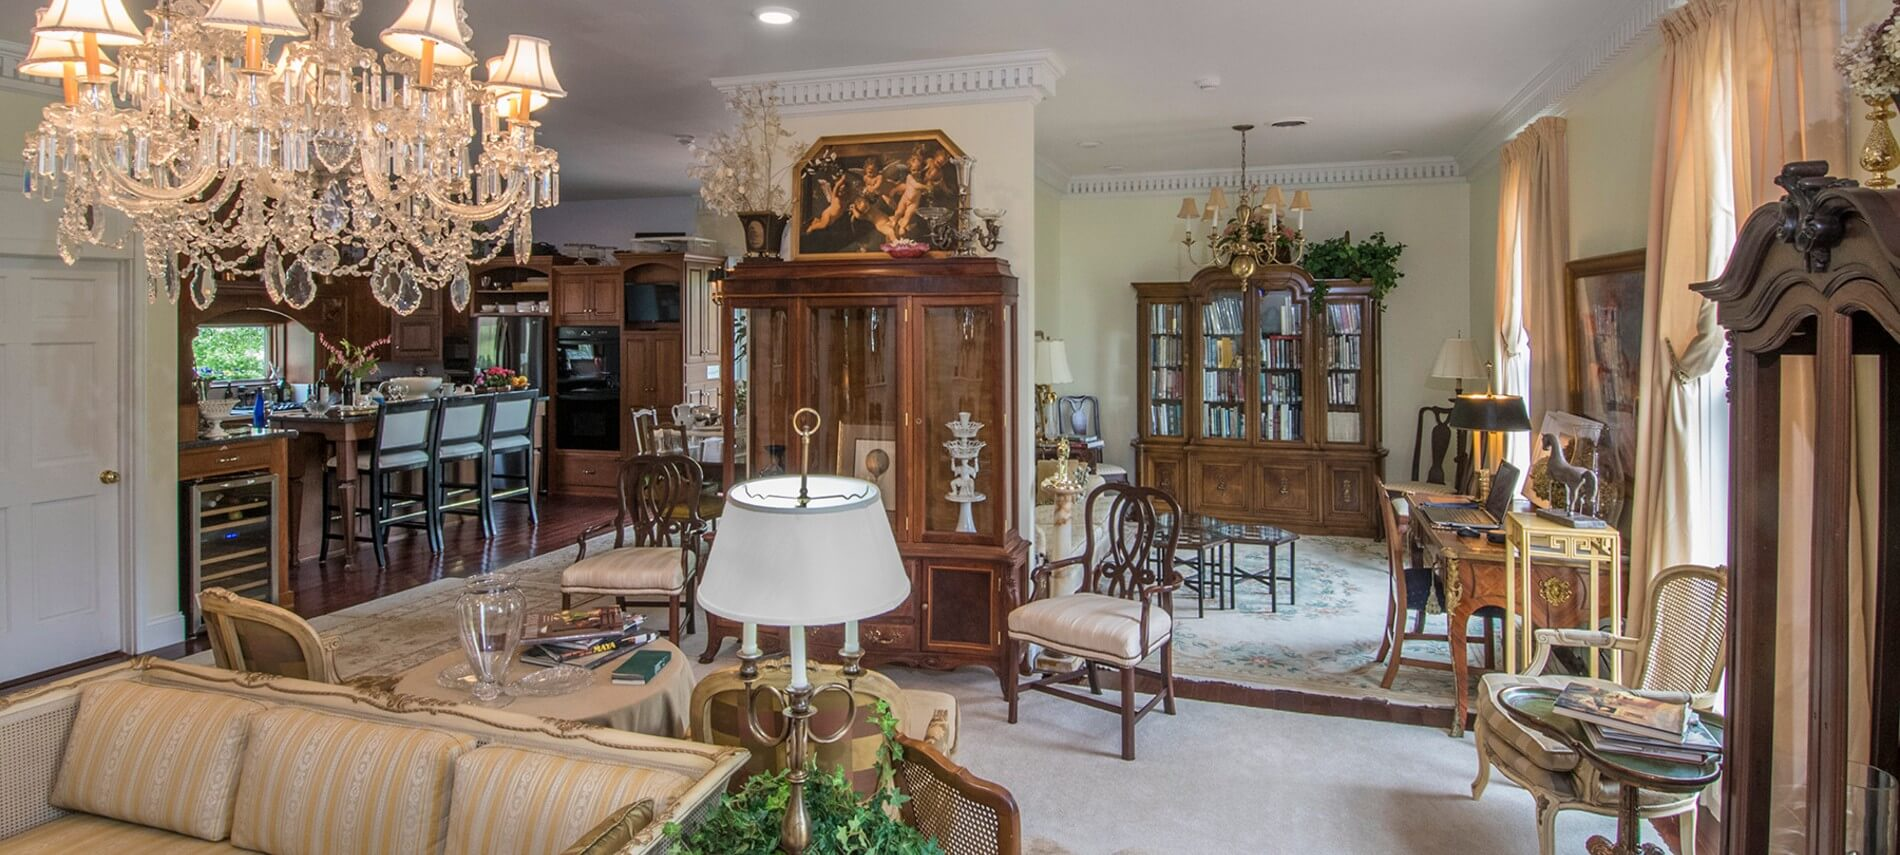 Kitchen and living rooms filled with antique furniture and art pieces.